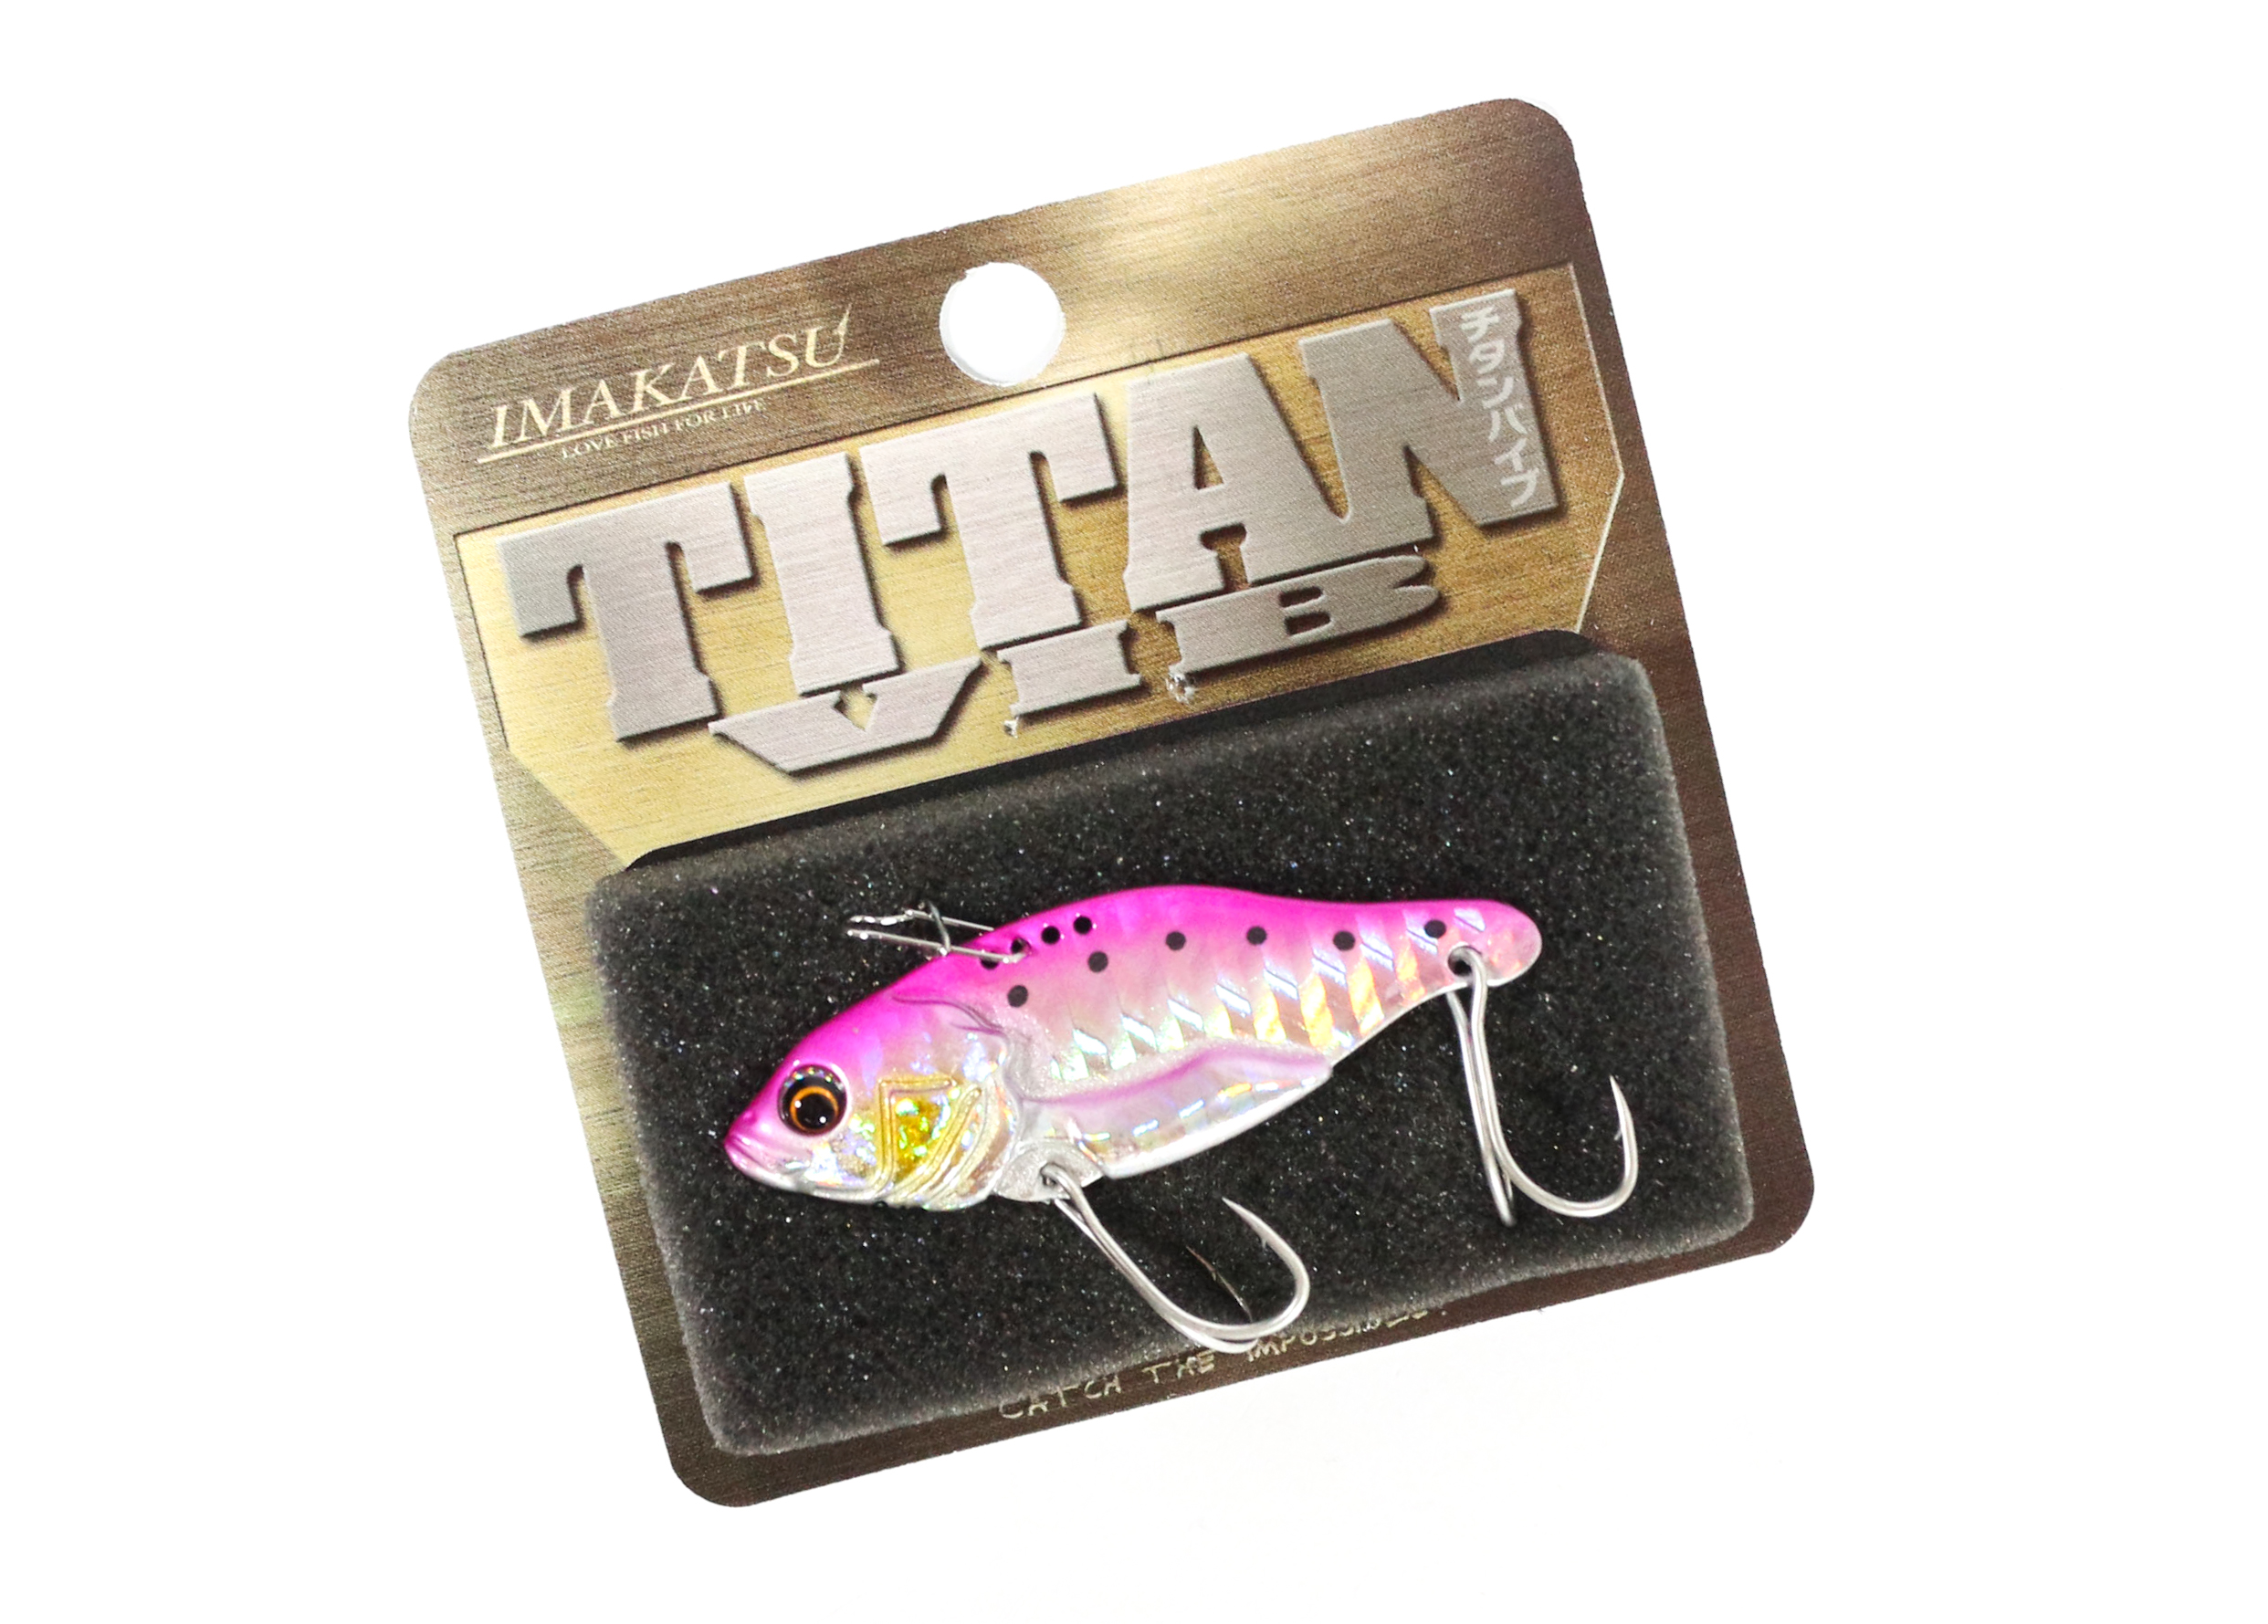 Sale Imakatsu Titan Vib Metal Vibration 3/8 oz Sinking Lure MV-26 (4899)